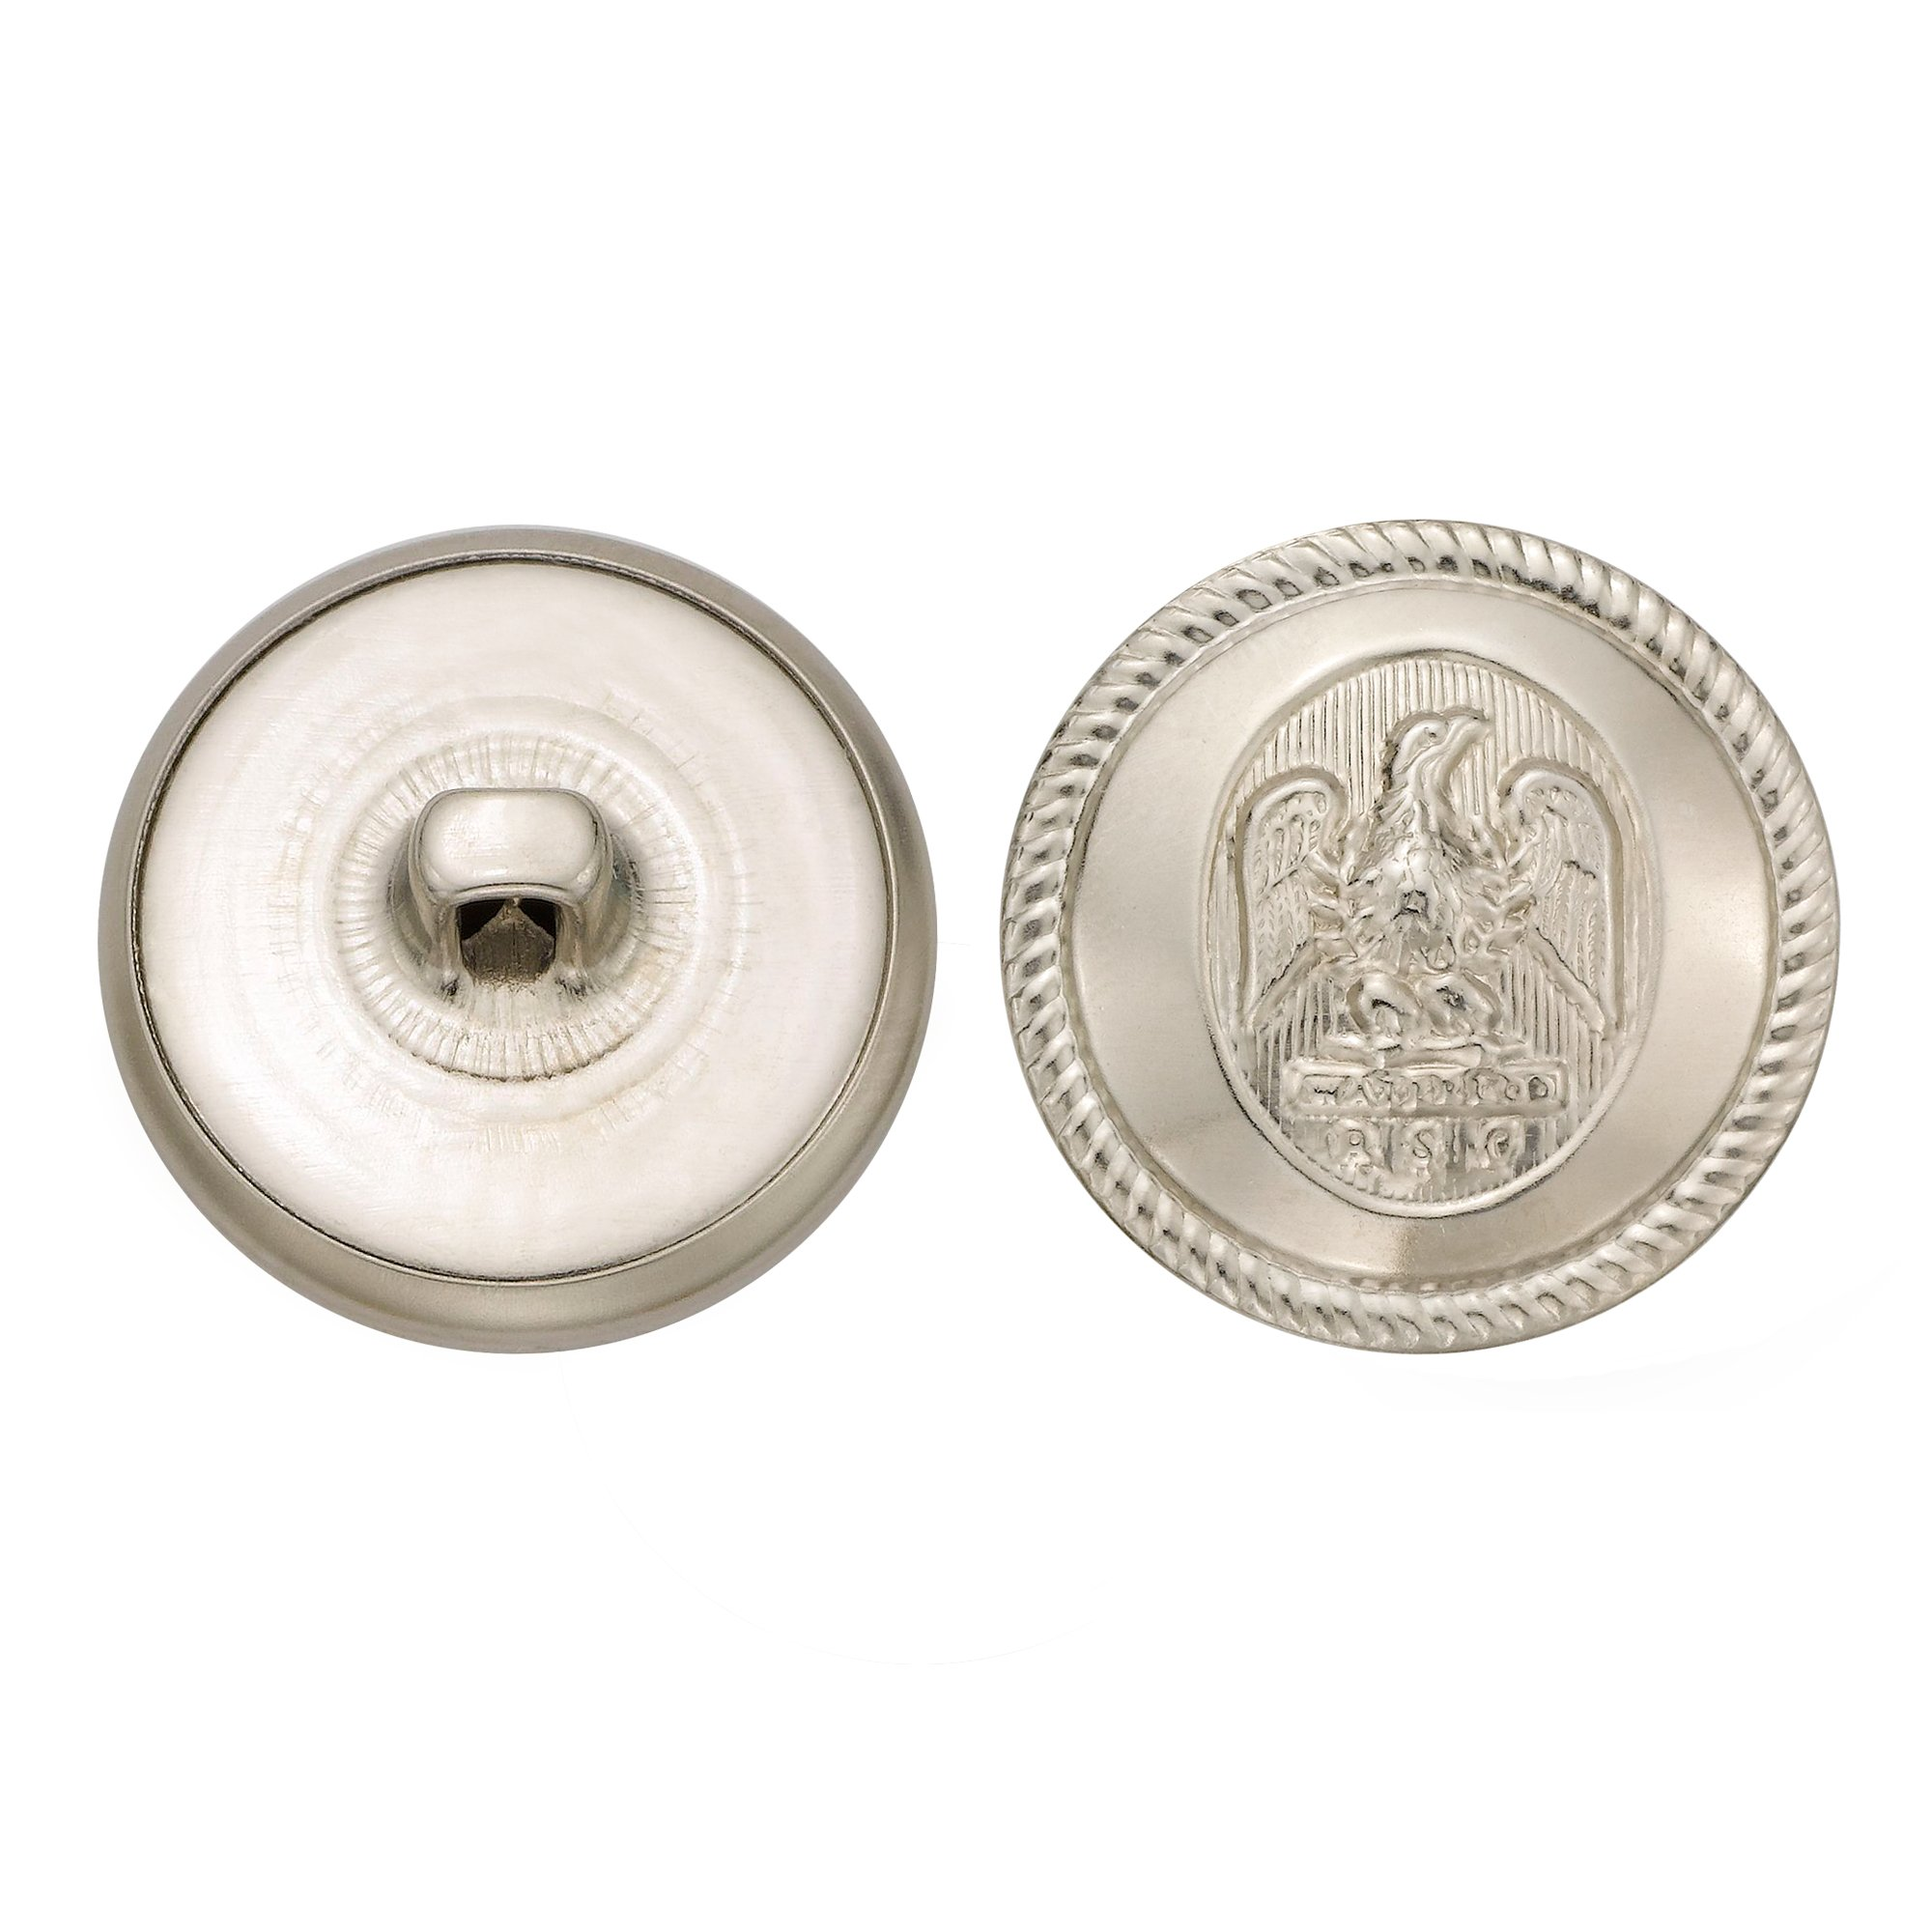 C&C Metal Products 5064 Rope Rim Usa Eagle Metal Button, Size 36 Ligne, Nickel, 36-Pack